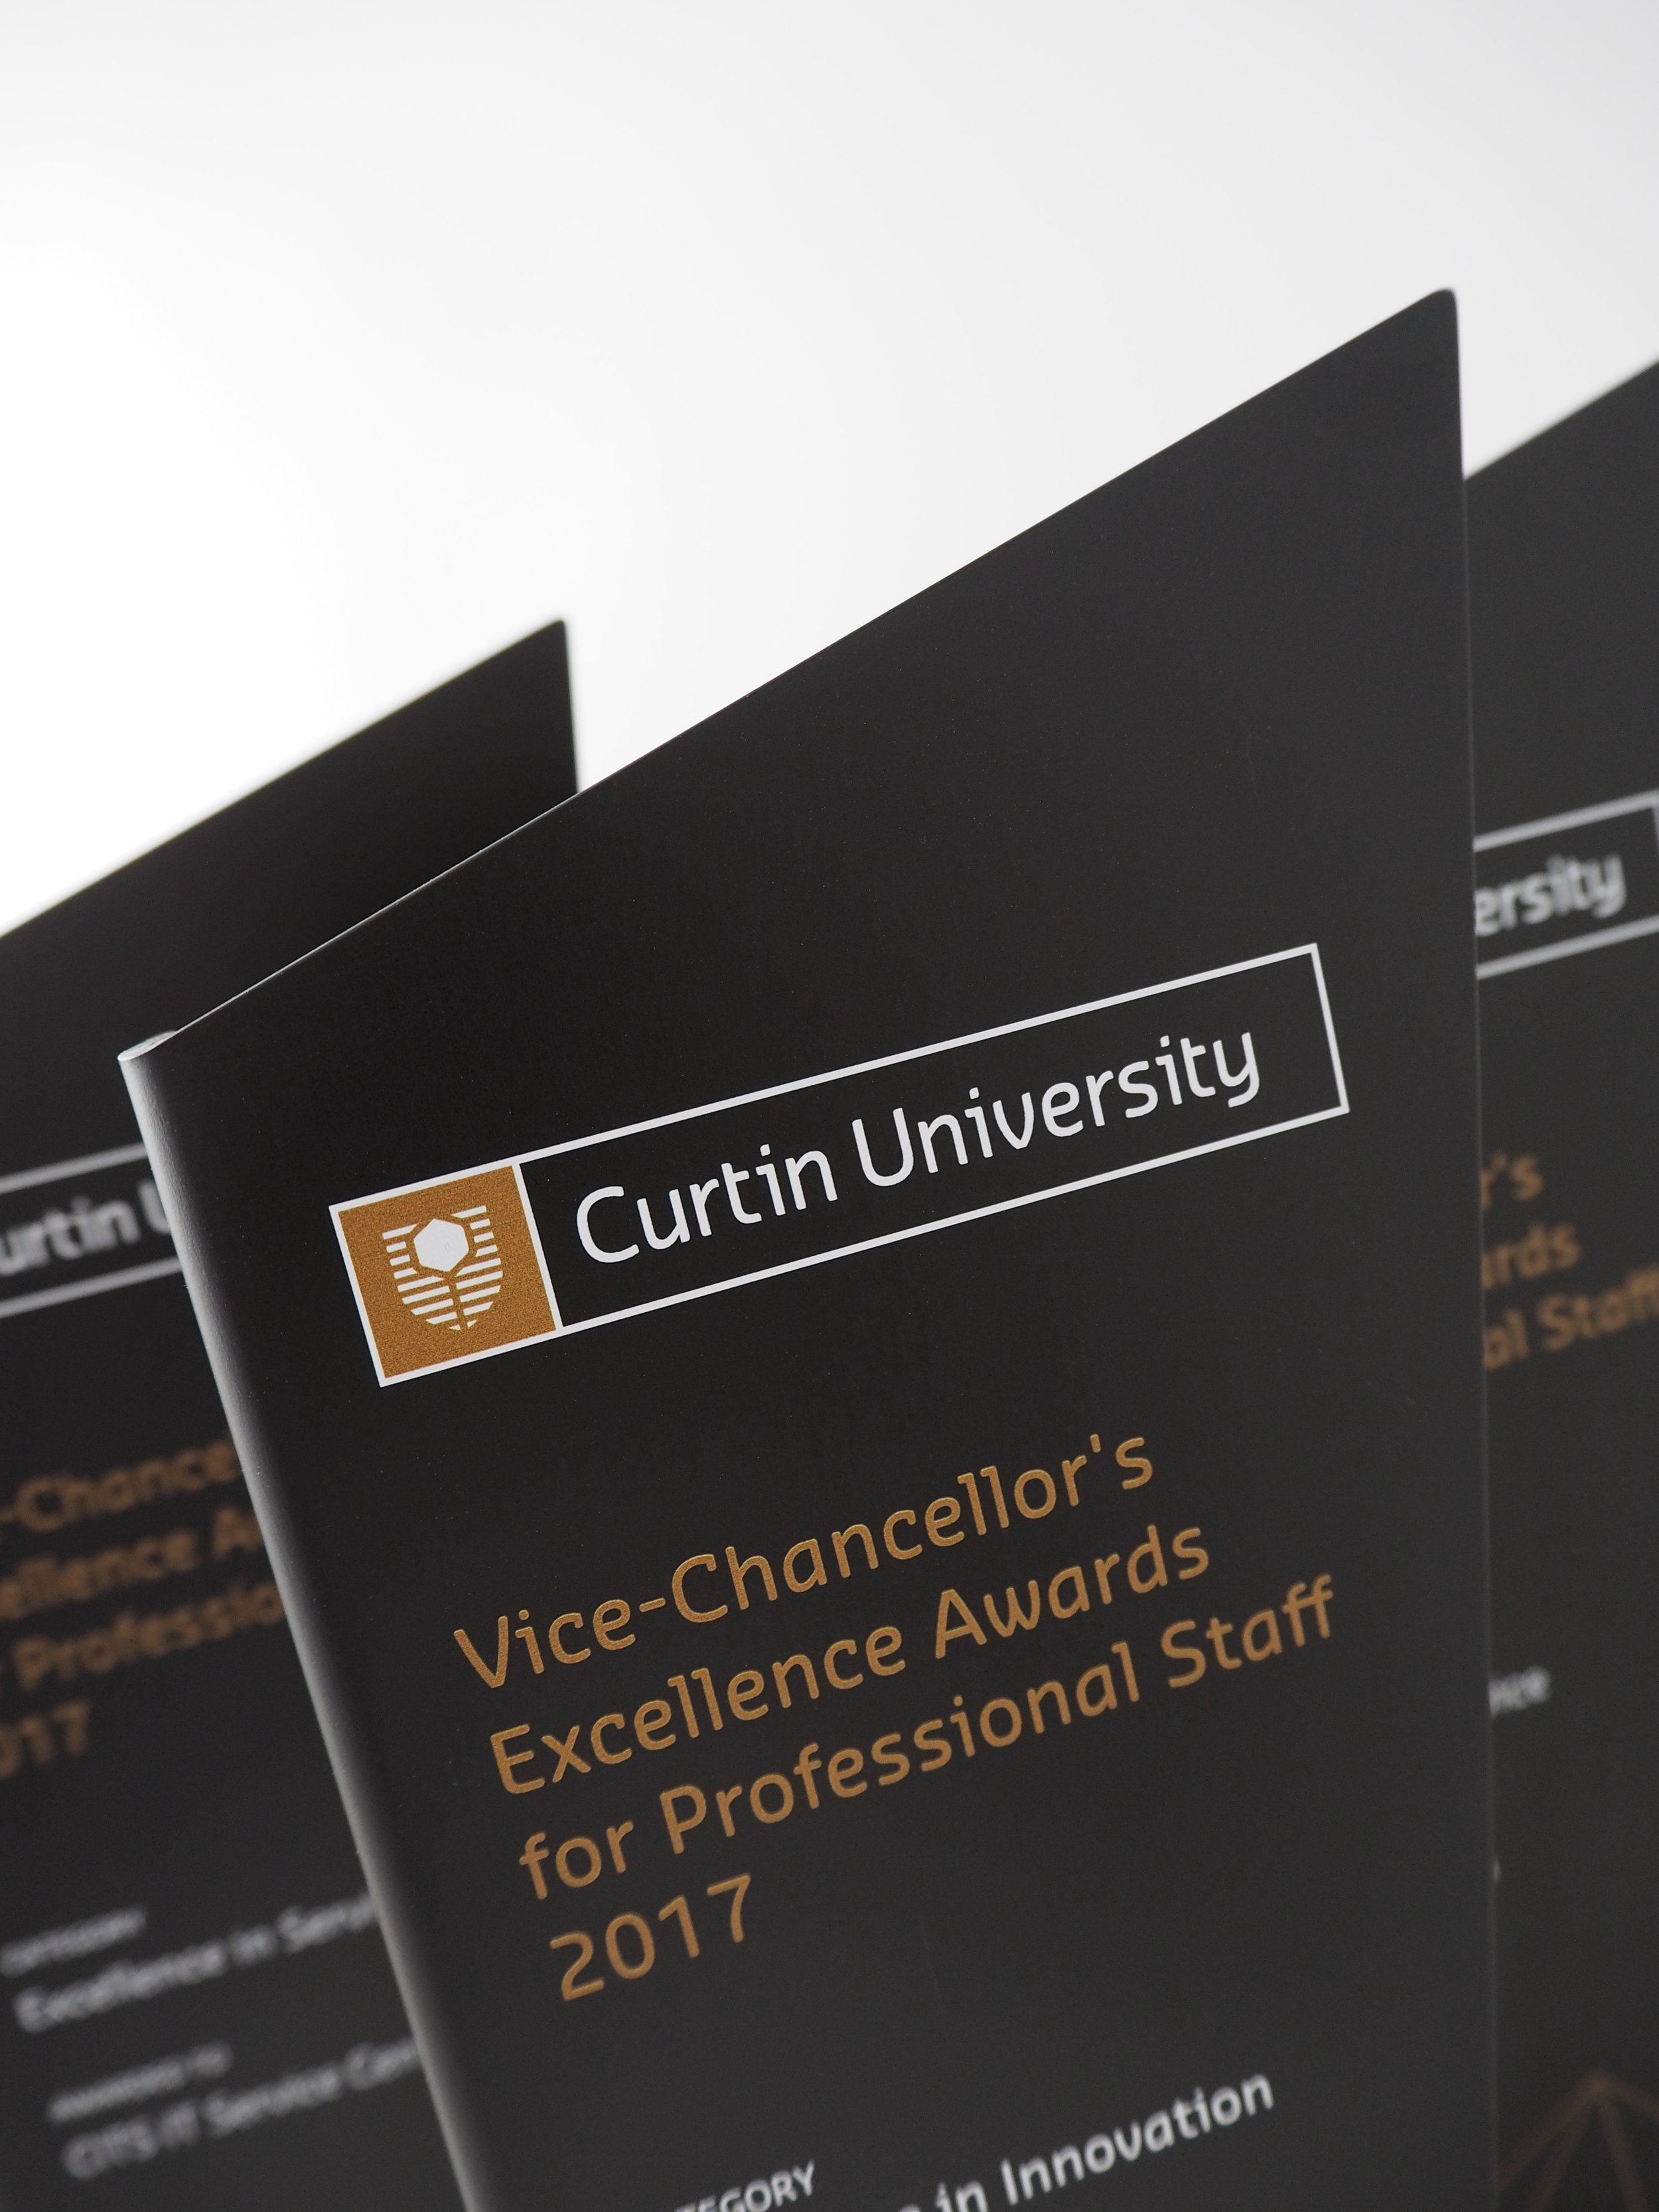 curtin-university-VC-excellence-awards-staff-trophy-04.jpg